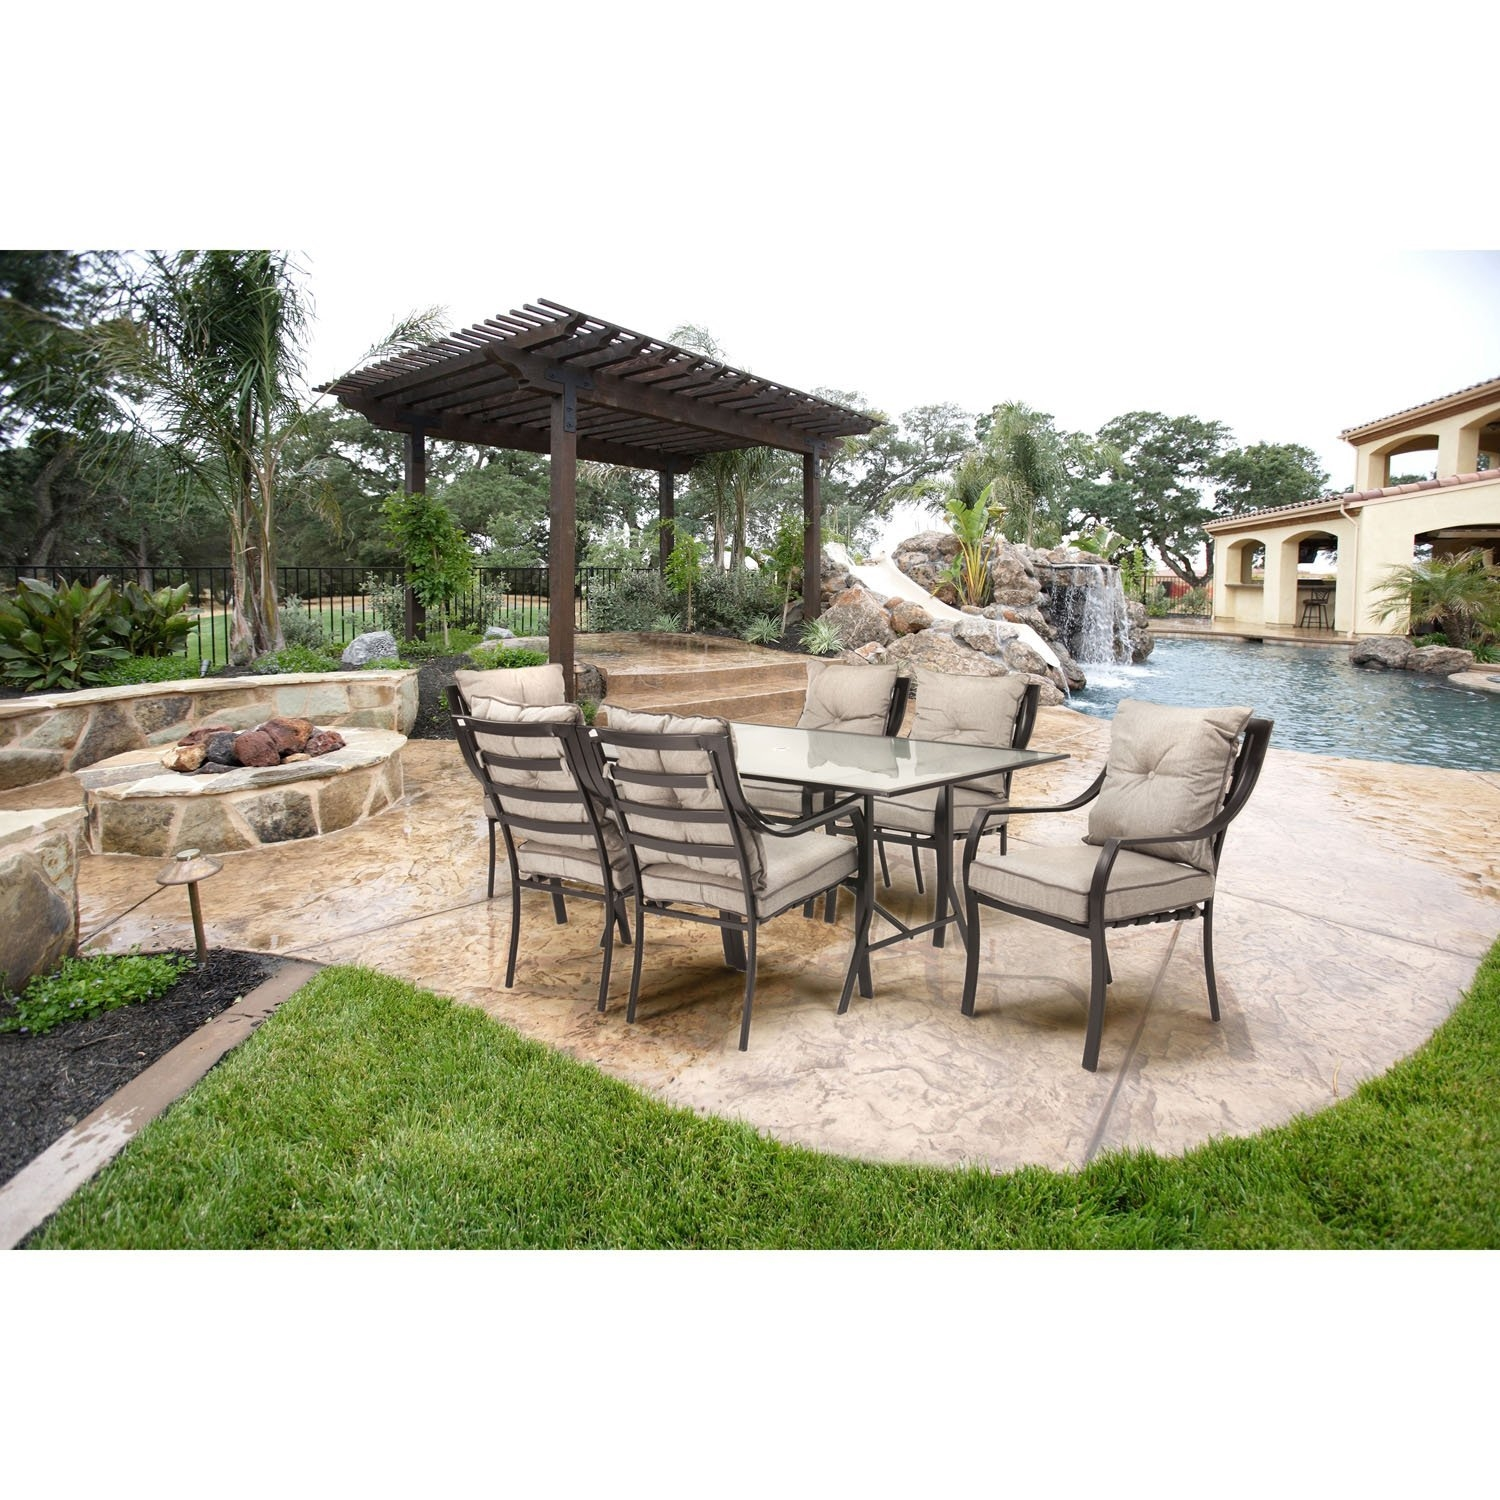 7 Piece Patio Set 7 Piece Outdoor Patio Furniture Metal Dining Set With Cushions